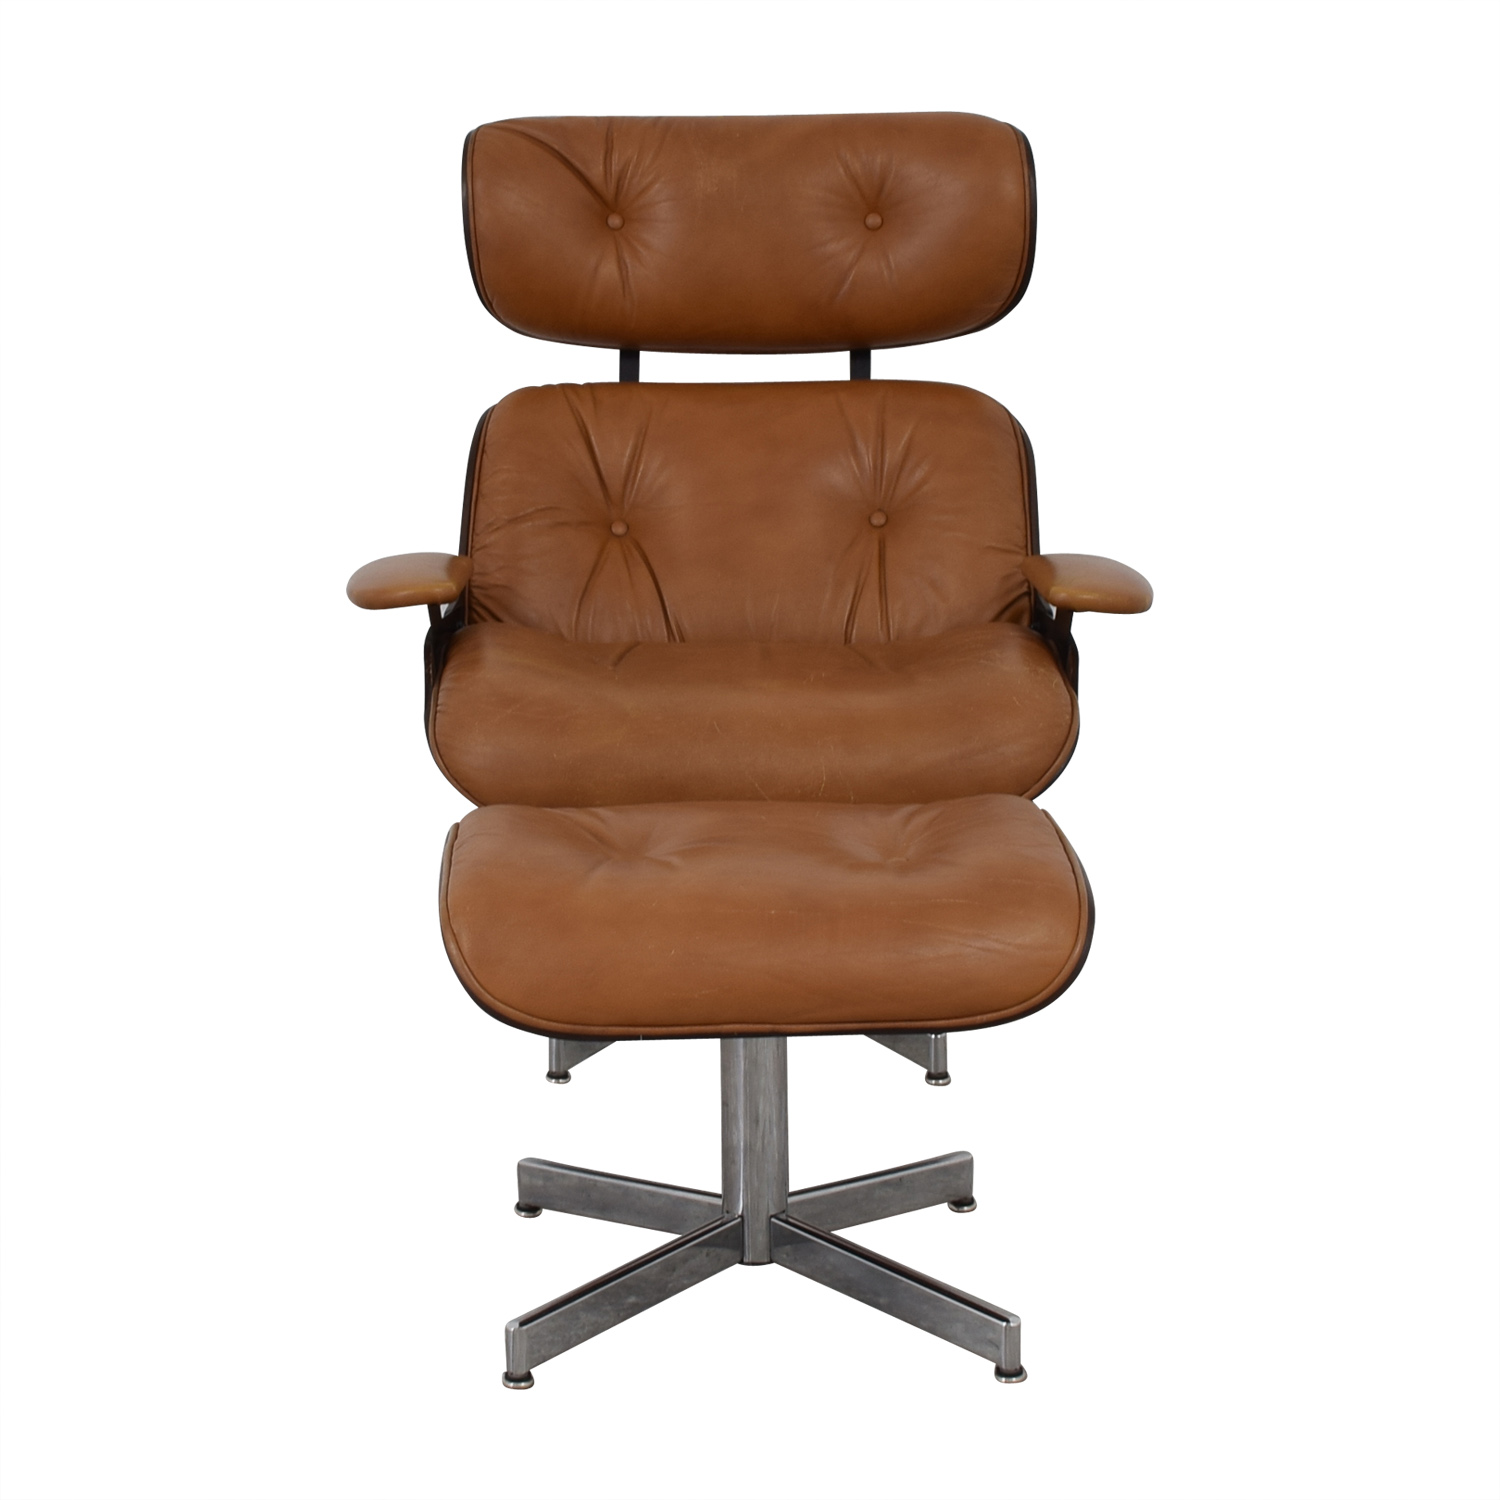 Eames Ottoman 55 Off Plycraft Plycraft Eames Style Lounge Chair And Ottoman Chairs